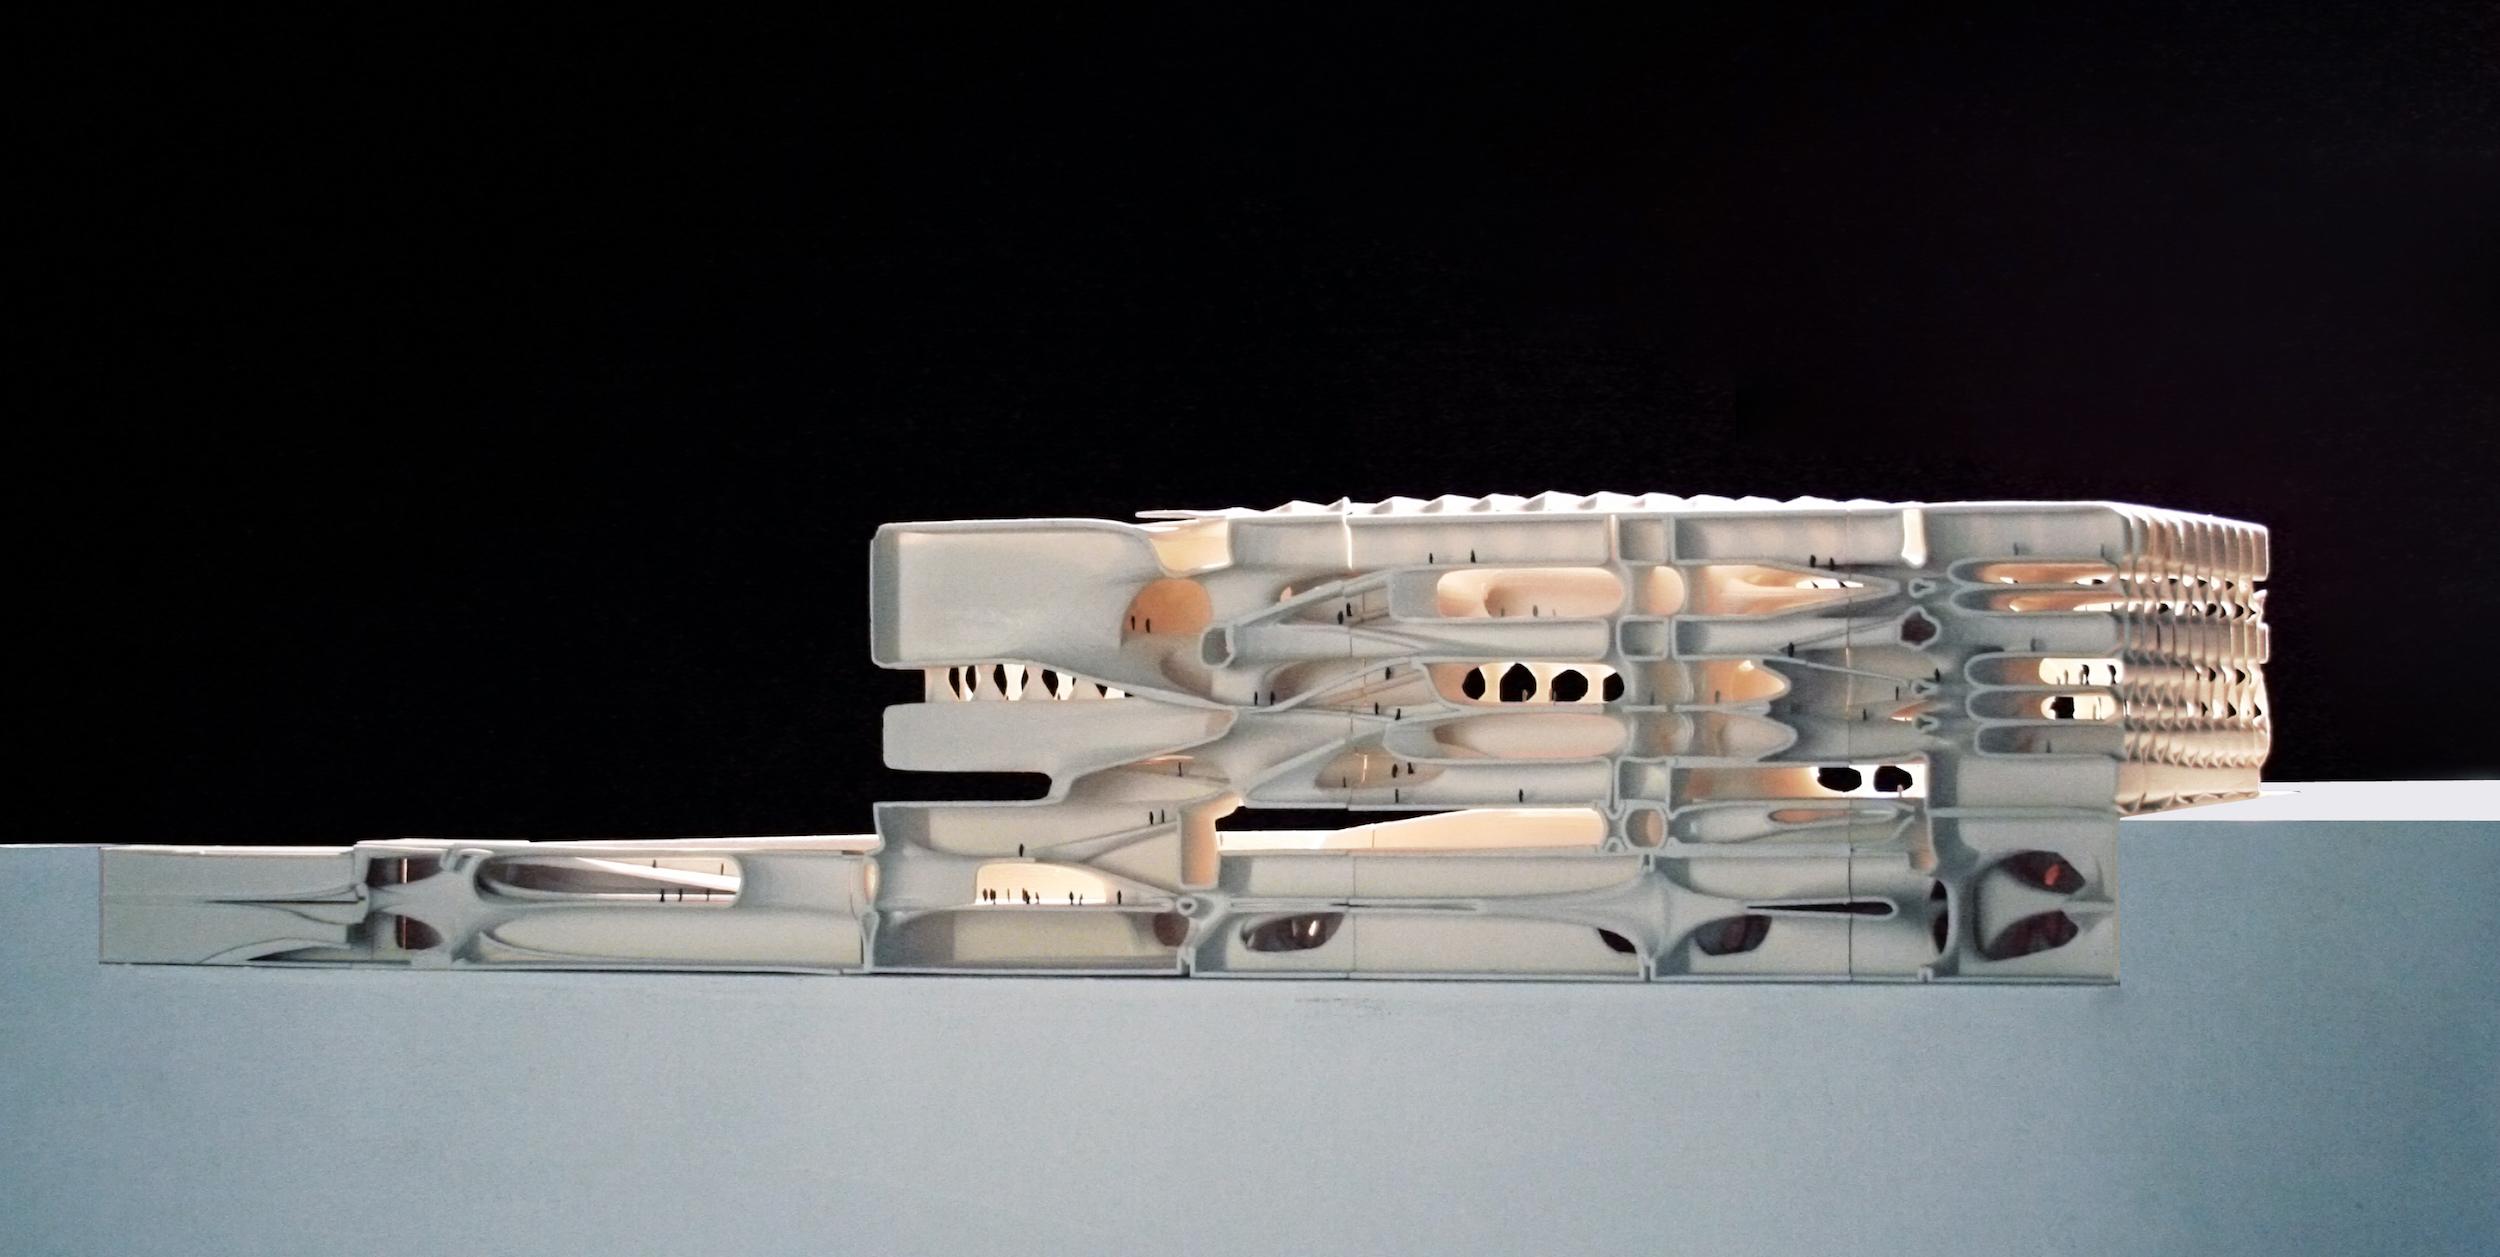 Section Model. Scale 1:300